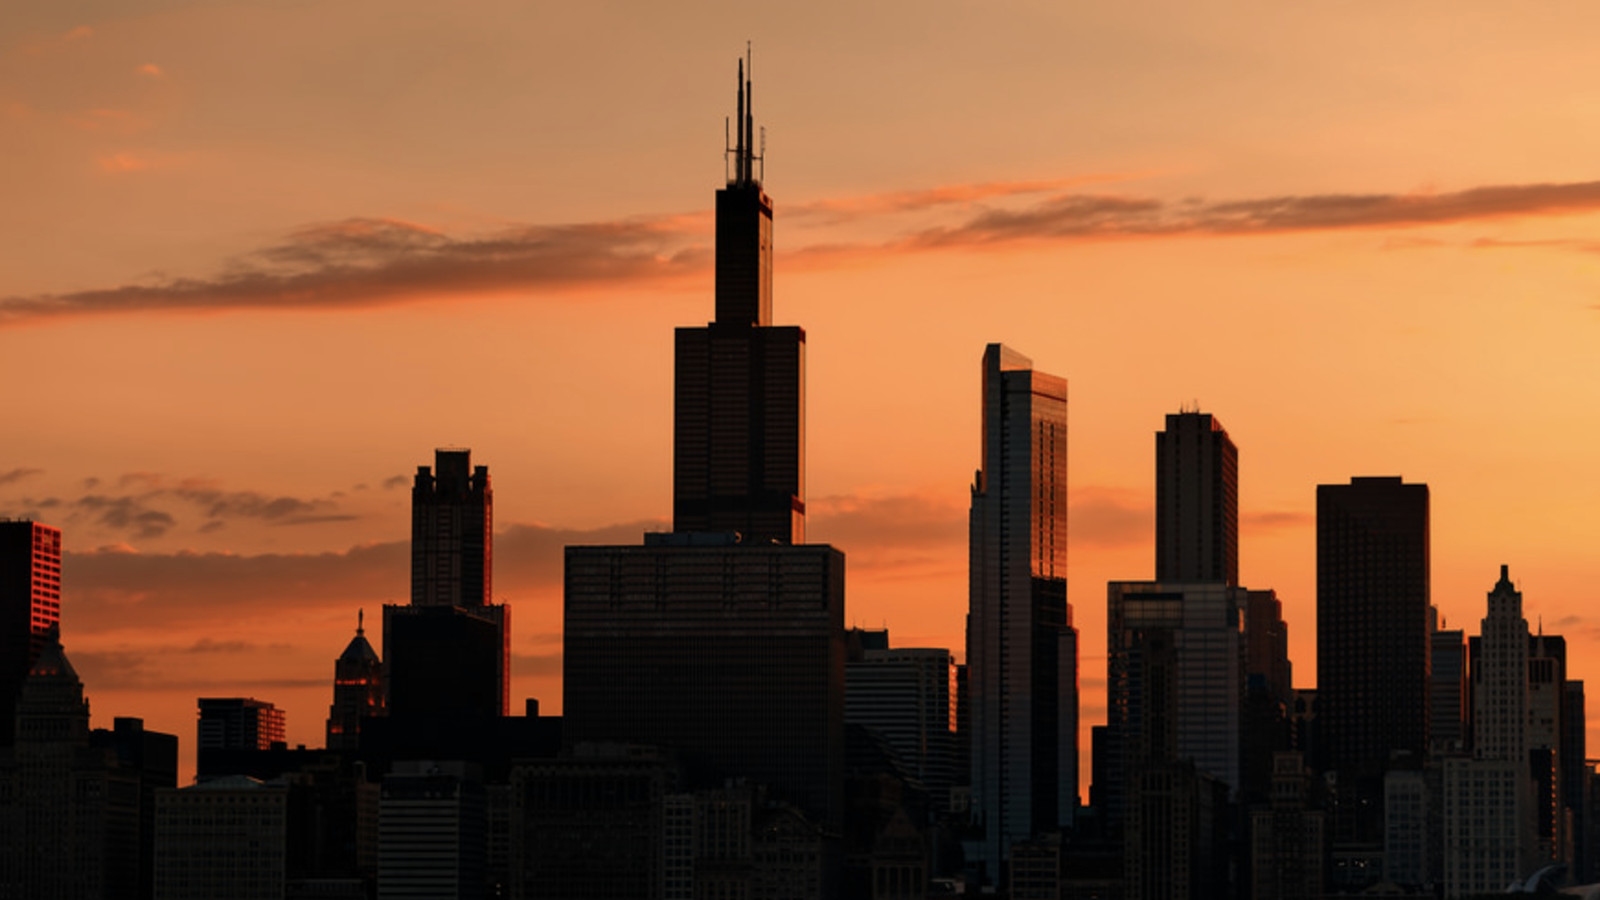 Solar For America >> Solar eclipse 2017: What to expect in Chicago - Curbed Chicago